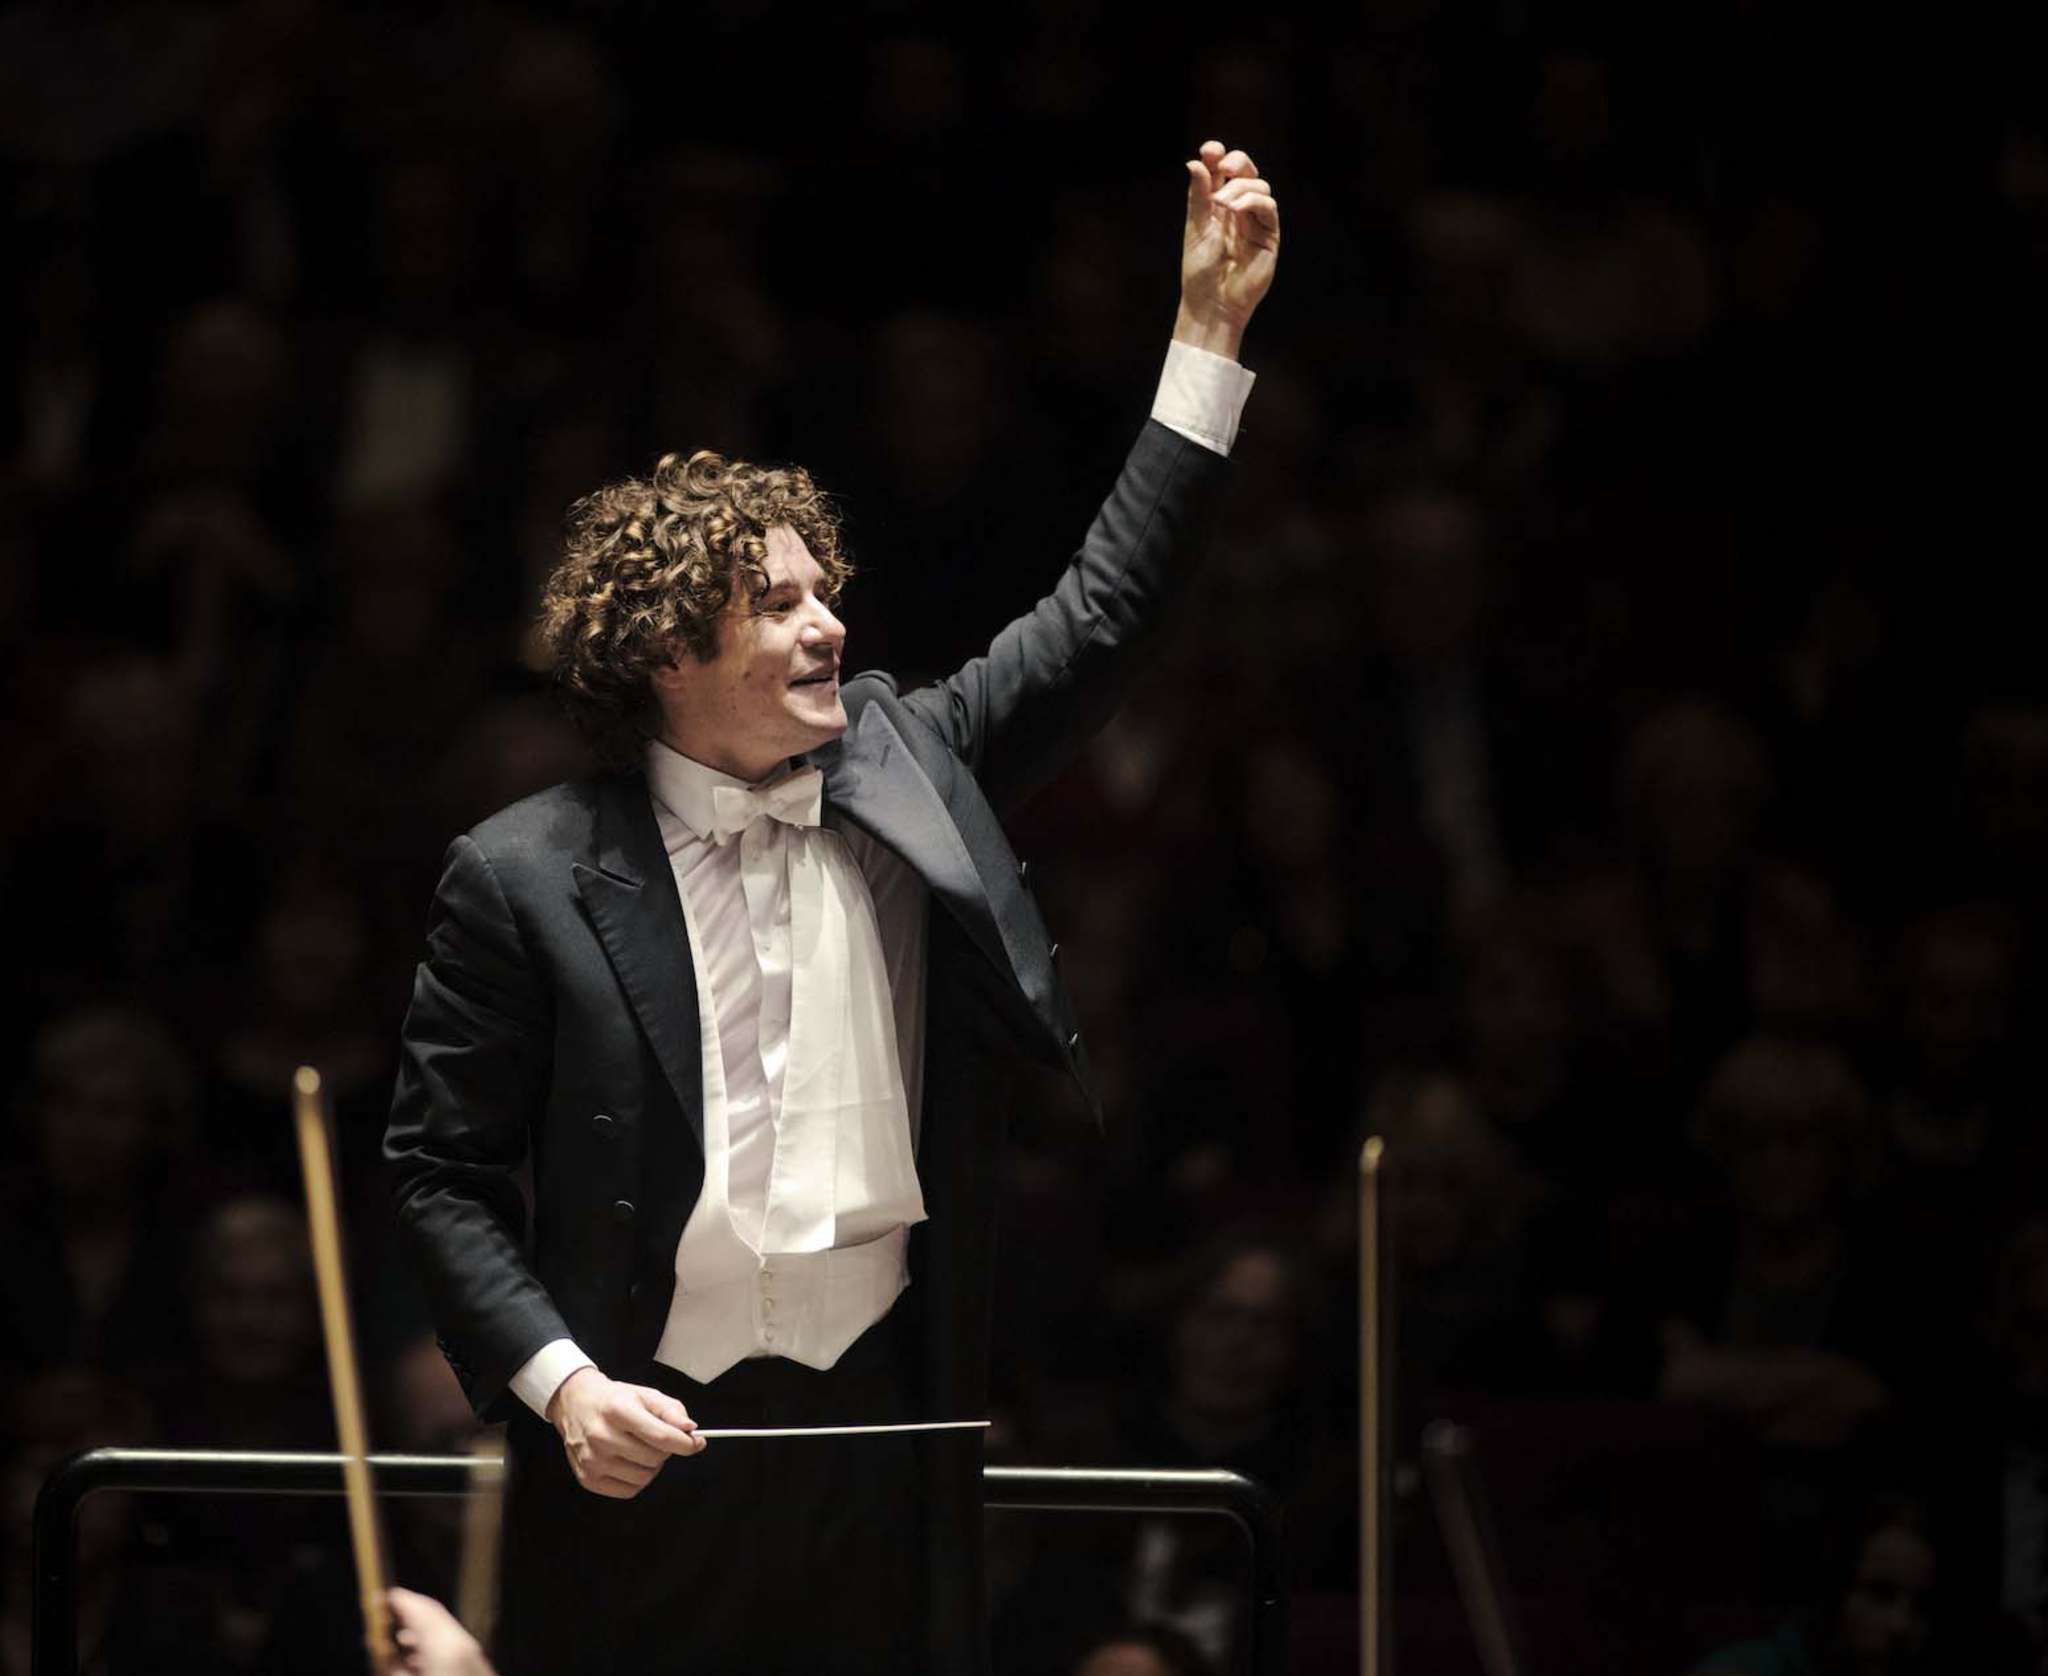 Conductor Robin Ticciati got buy-in from Philadelphia Orchestra players.